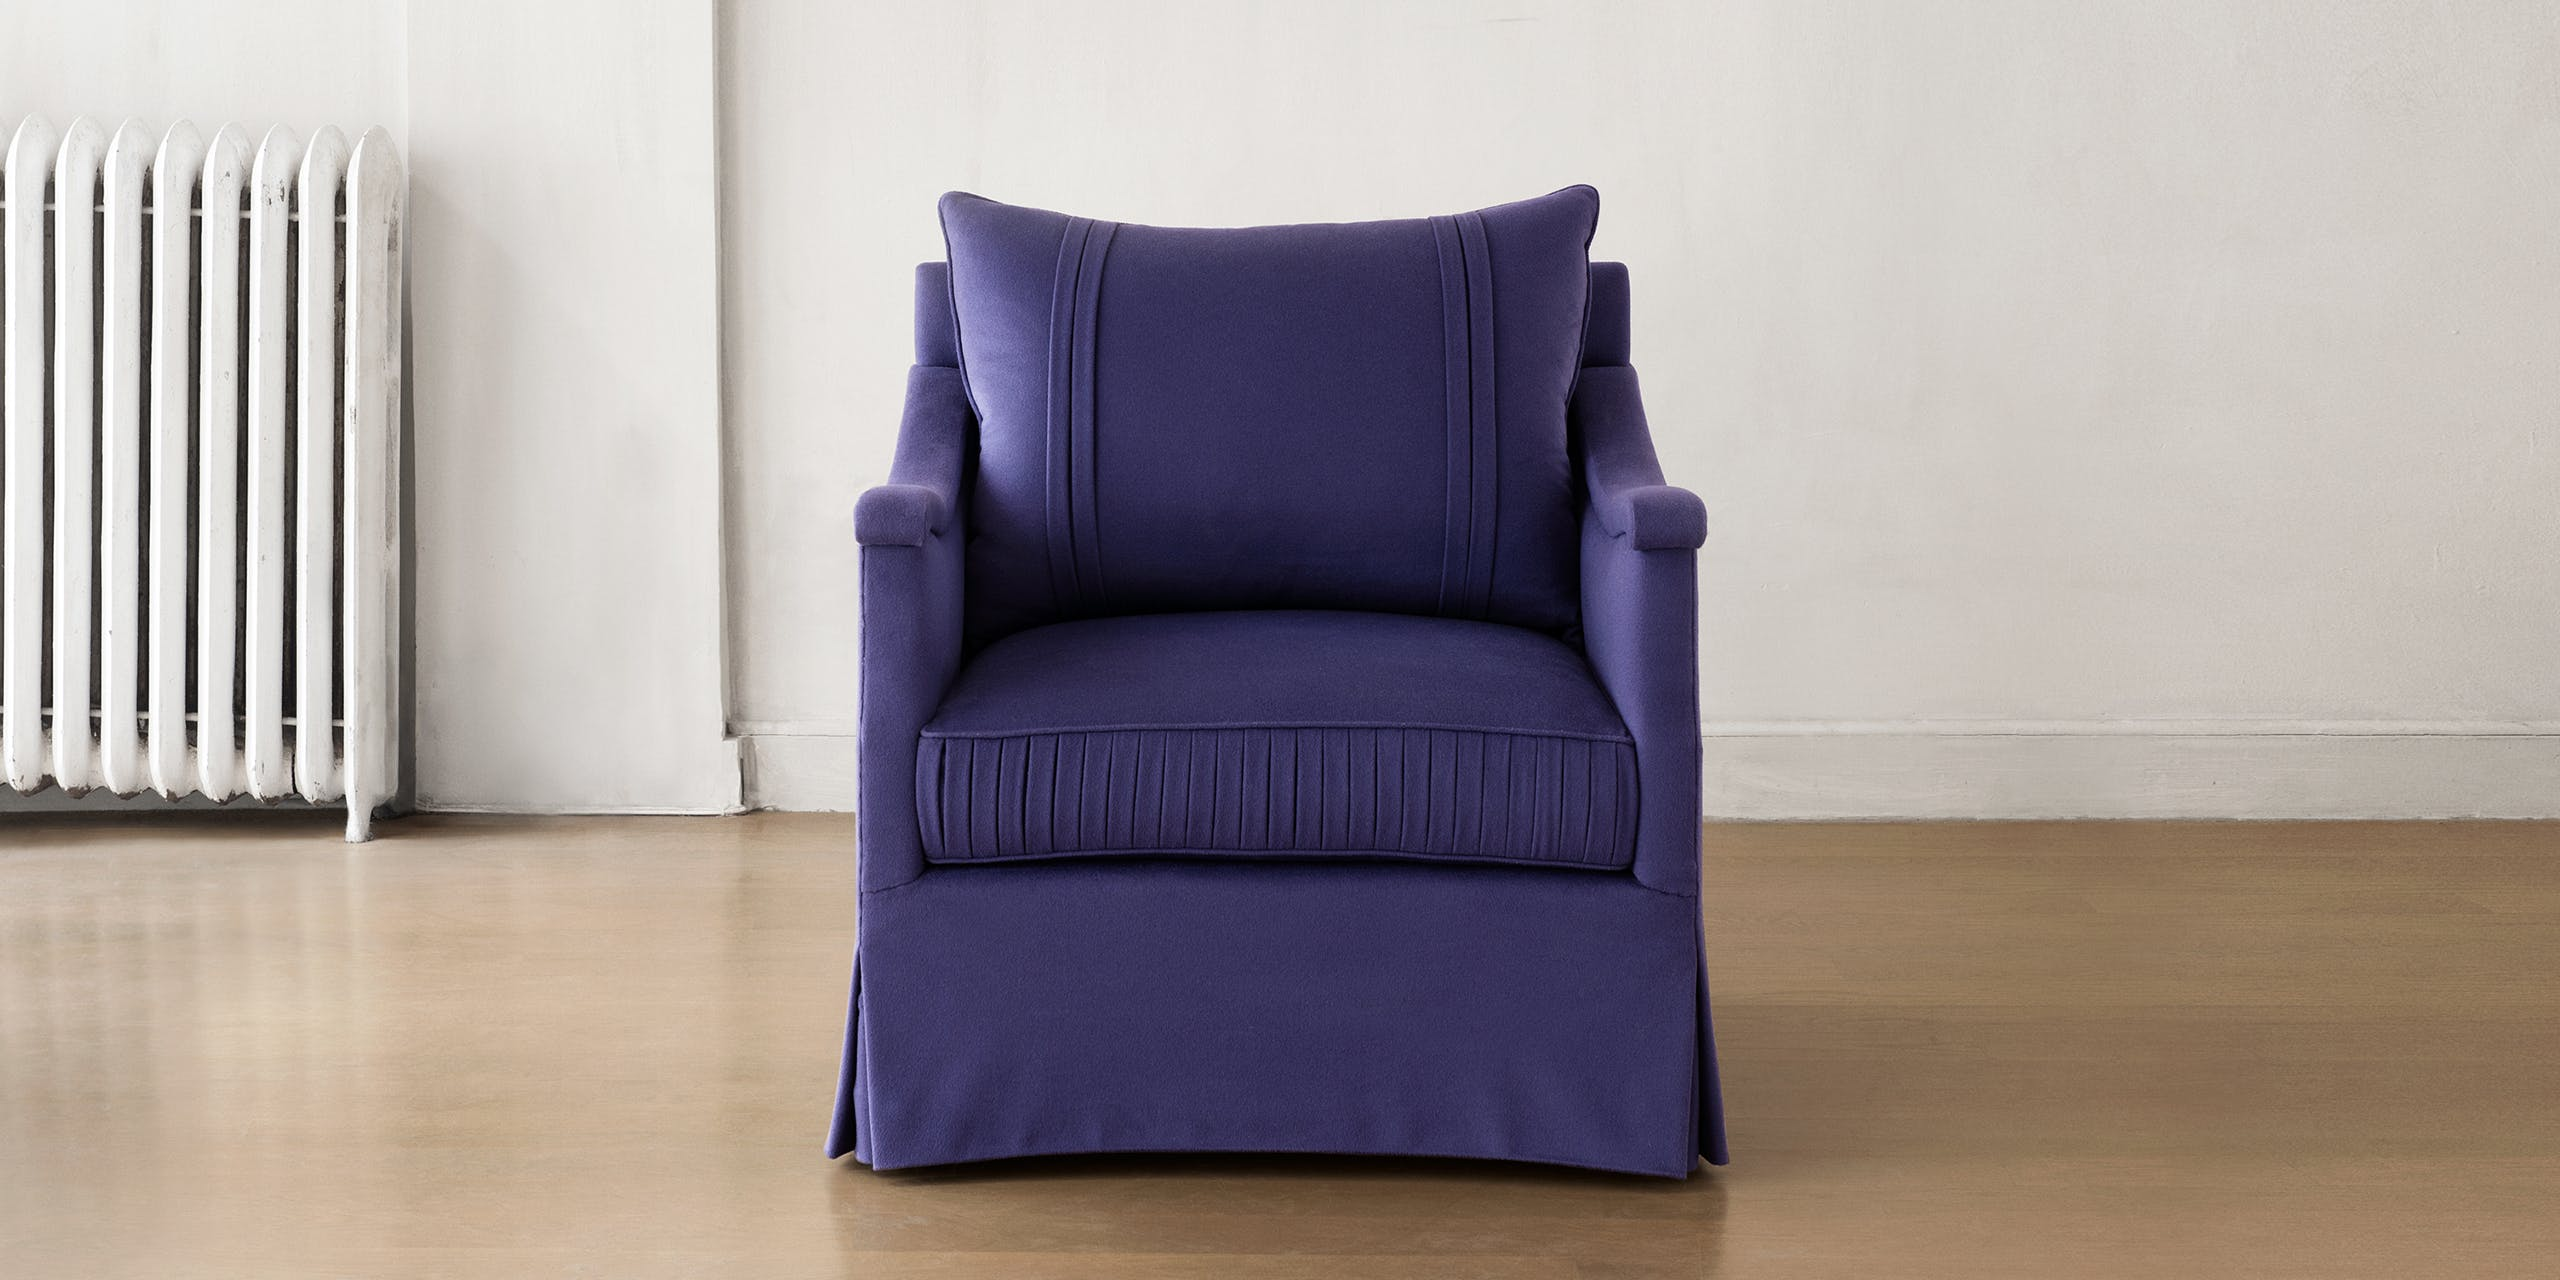 Vallone couture lounge chair main.jpg?ixlib=rails 2.1